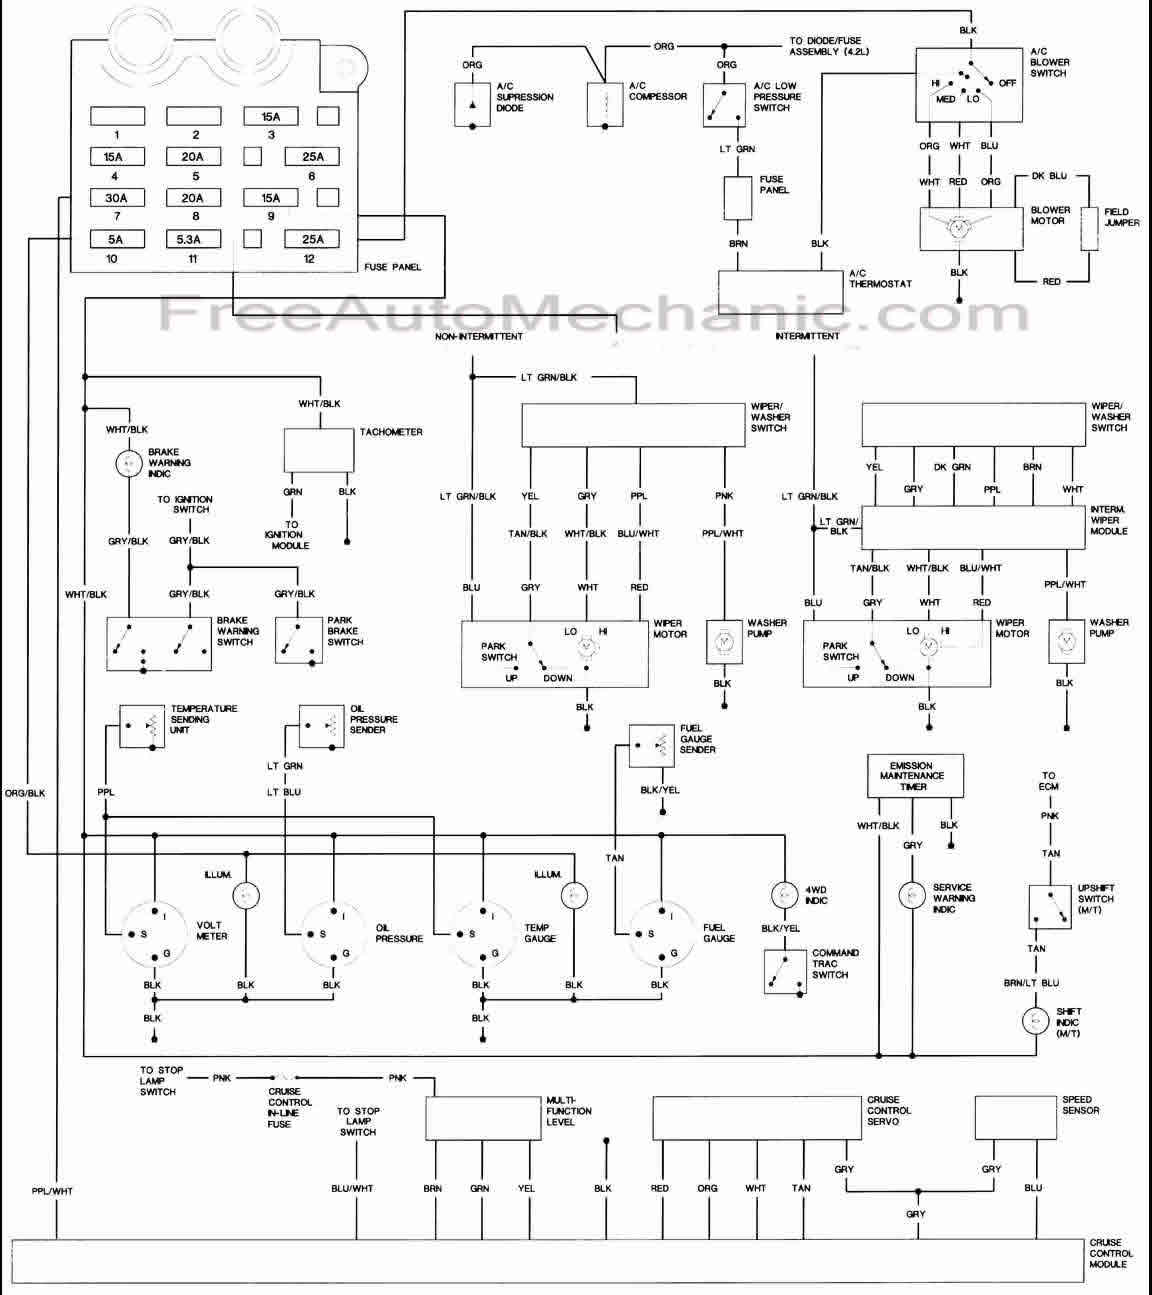 1997 jeep wrangler starter wiring diagram 1987 jeep wrangler starter wiring diagram 1987 jeep wrangler body 1 - freeautomechanic